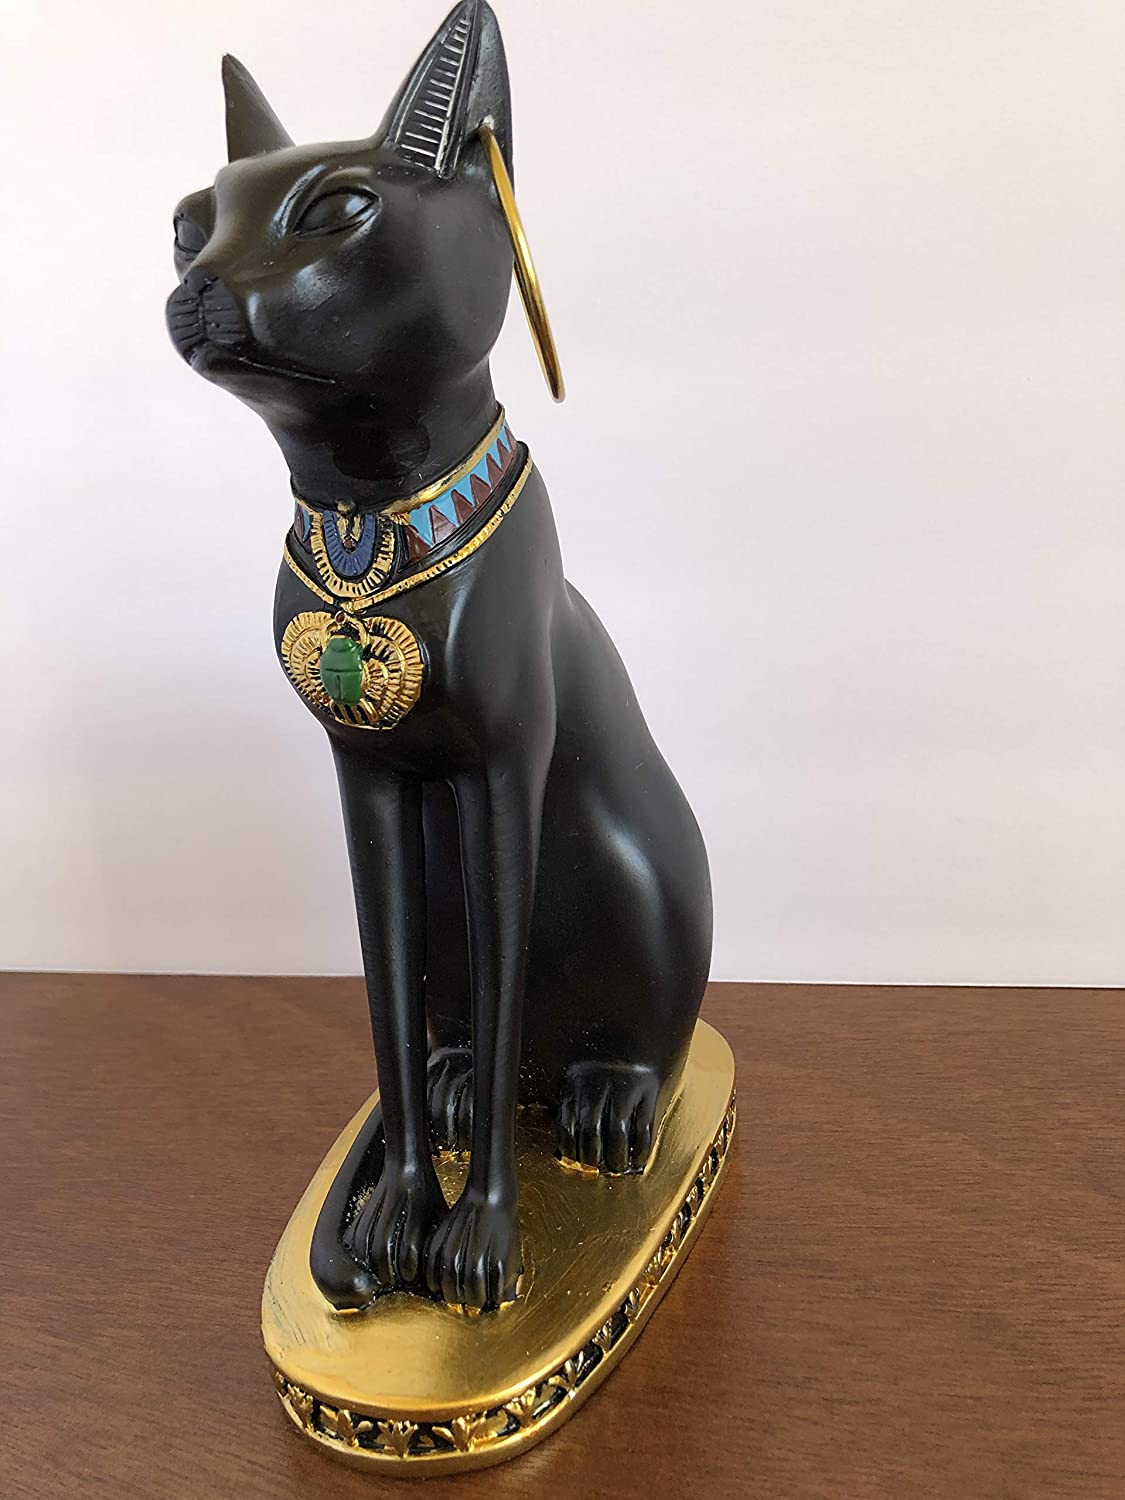 YOUNI - Ancient Egypt Kitty Egyptian Bastet Sculpture Cat Goddess Statue Collectible (Bronze, 9 inches)